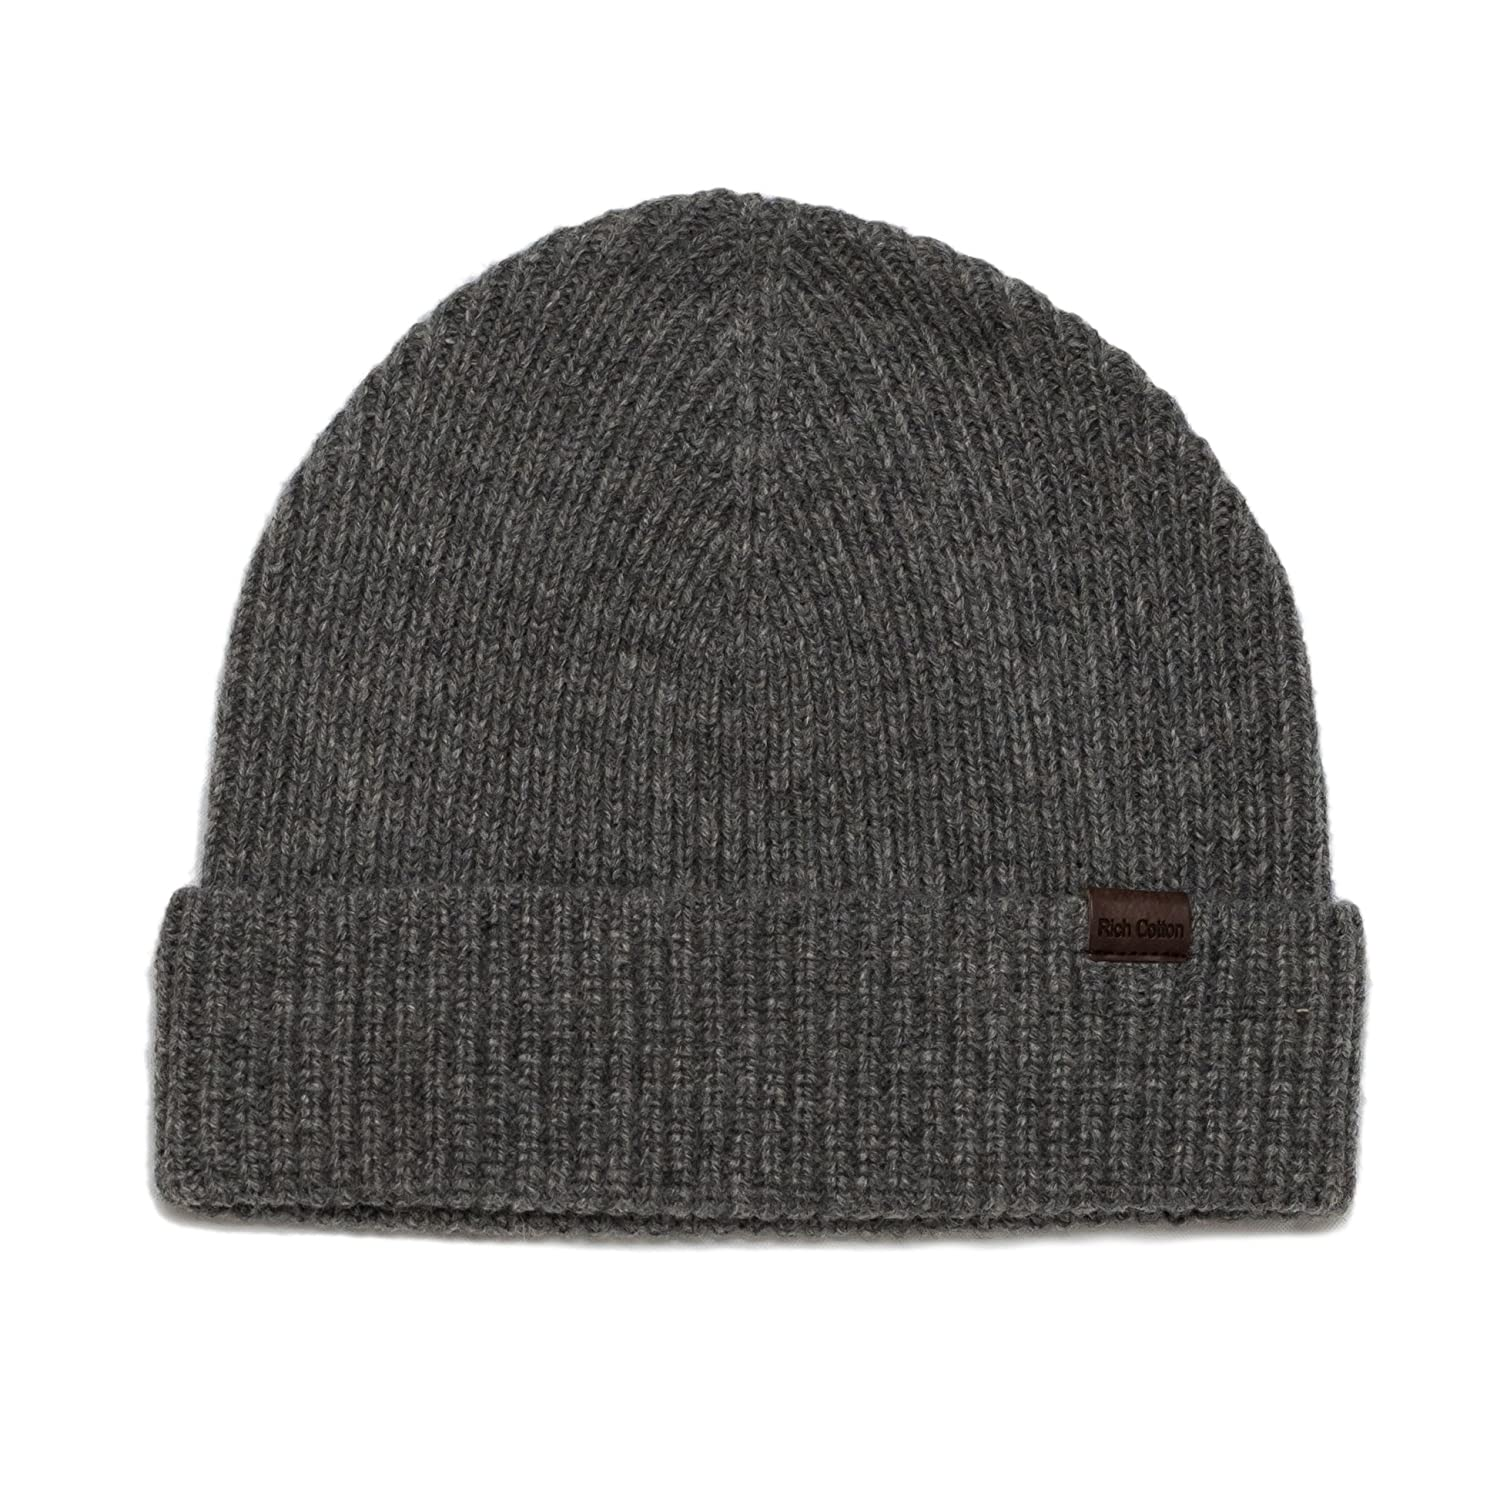 Rich Cotton Wool Beanie Hat 100/% Merino Wool Men Women 7 Colors Hat